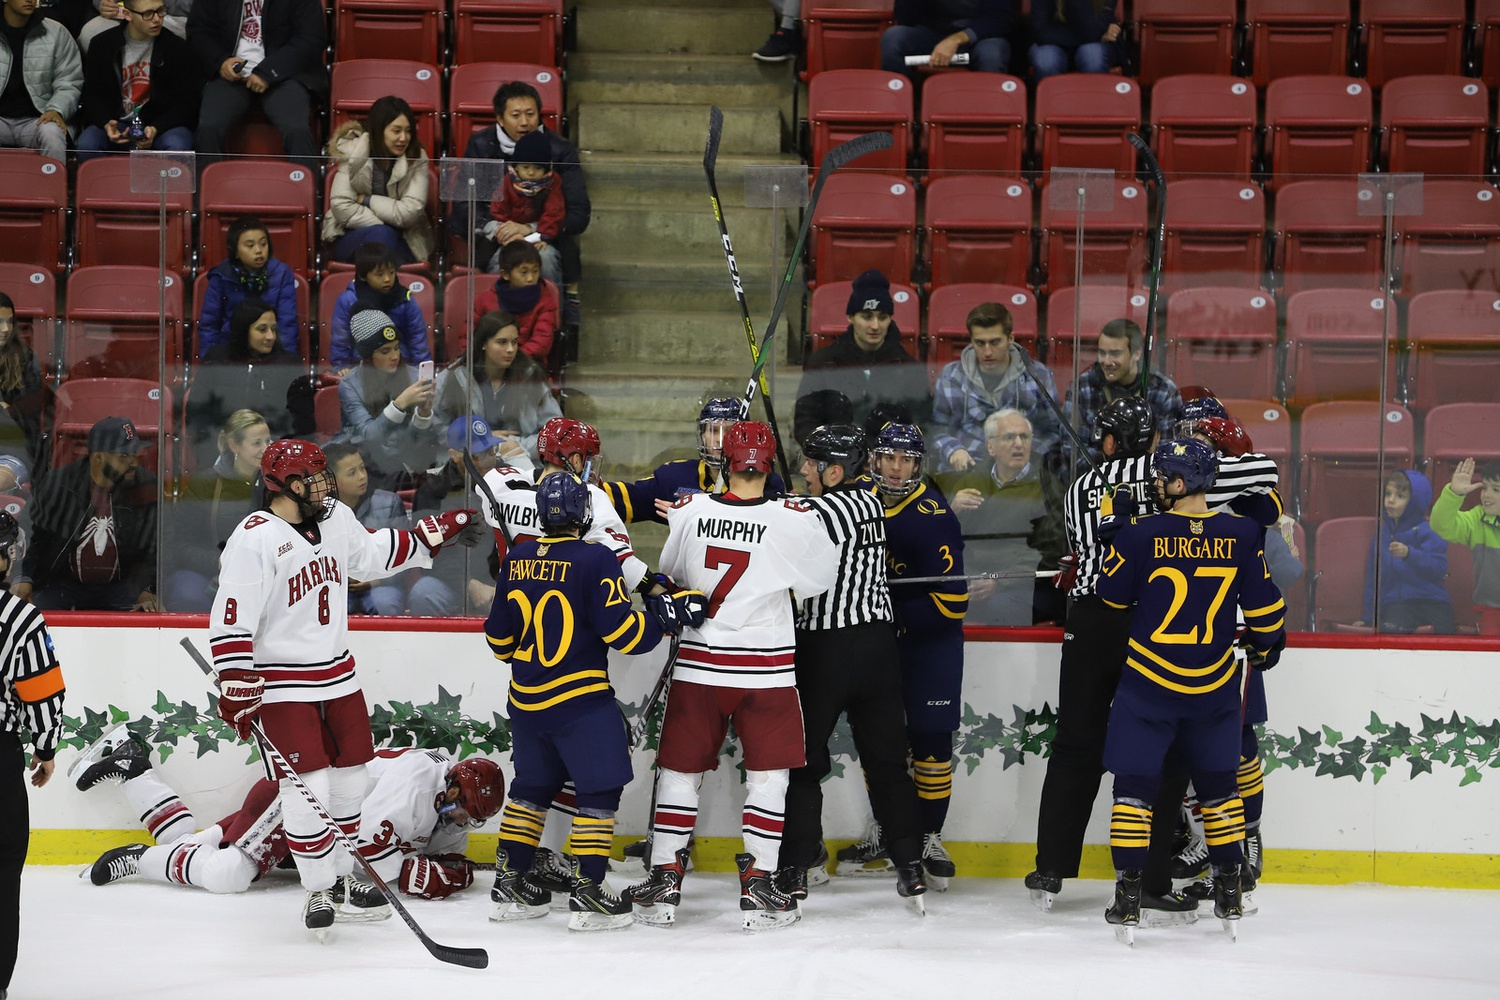 The Crimson struggled to impose a full 60-minute game on its opponents this weekend, coming up with just one point out of a possible four.